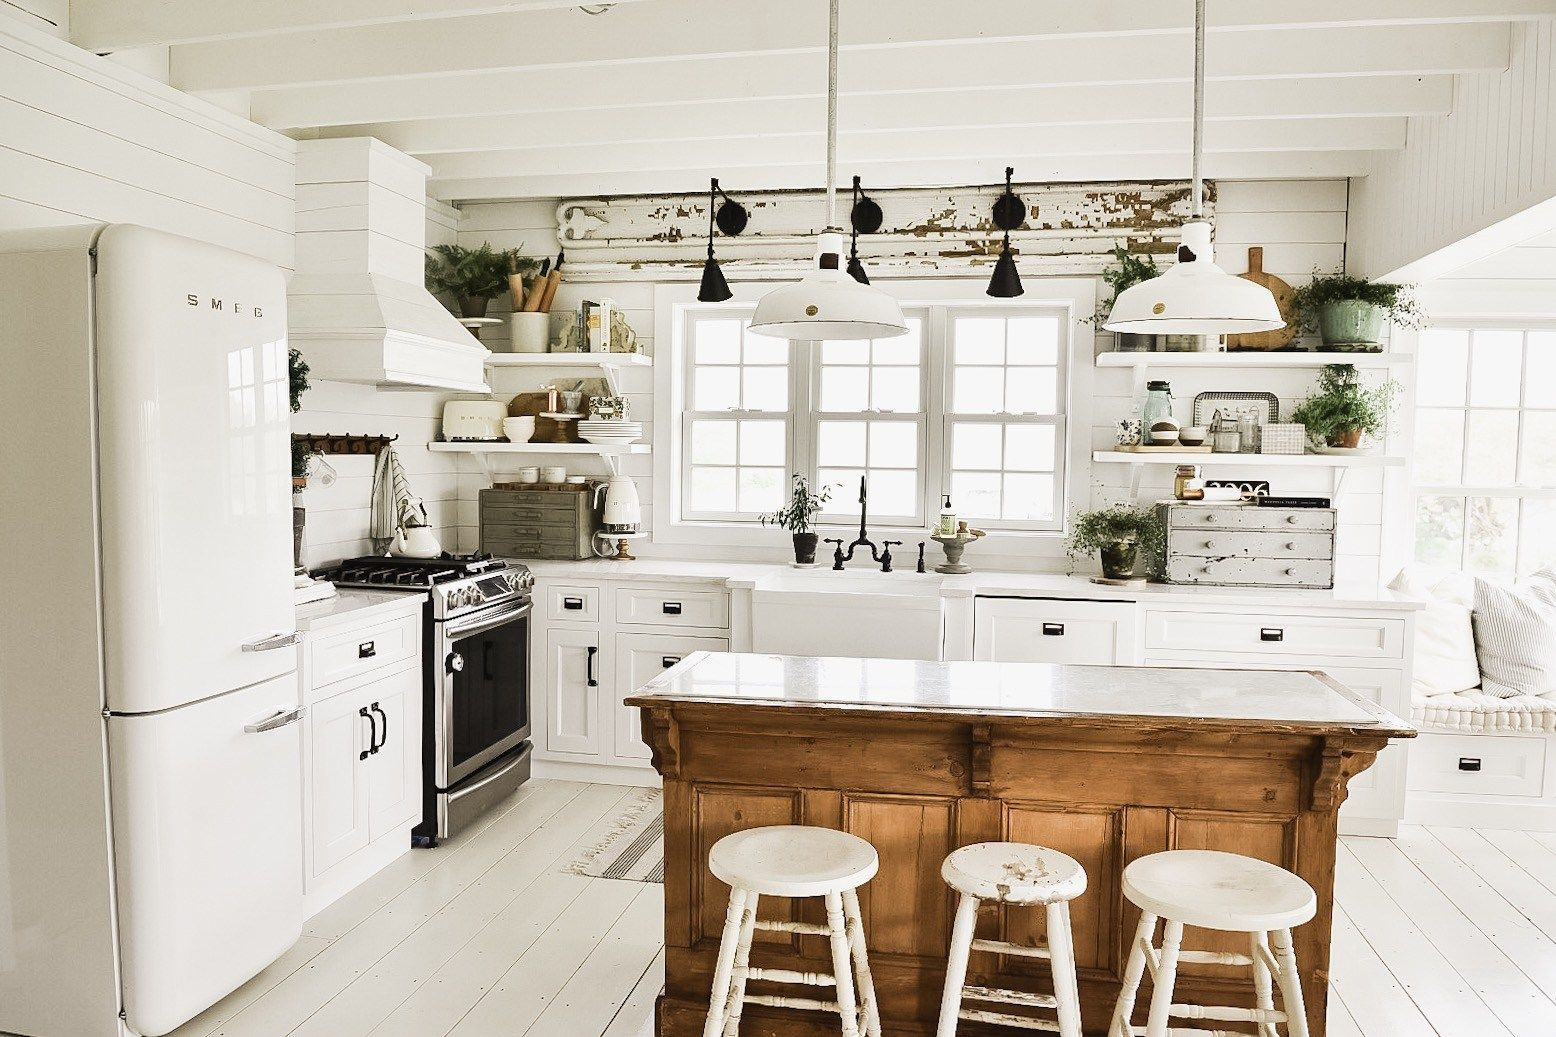 New Kitchen Wall Sconces Over The Sink | New kitchen, Home ...